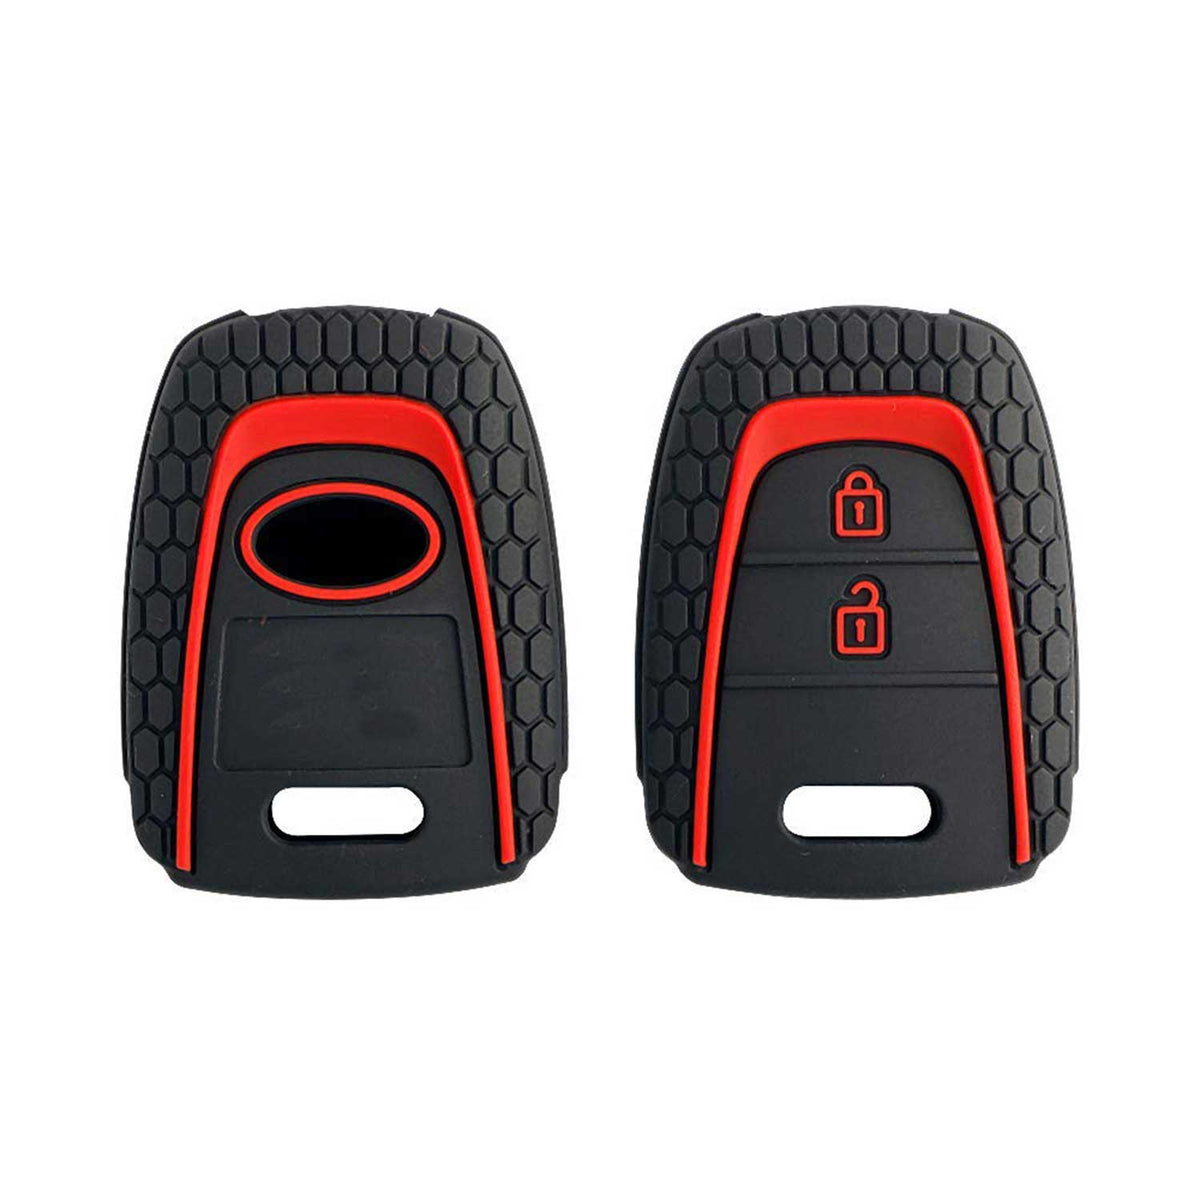 Hyundai Eon (Non-Flip Key) - Black & Red Premium Silicone Key Cover